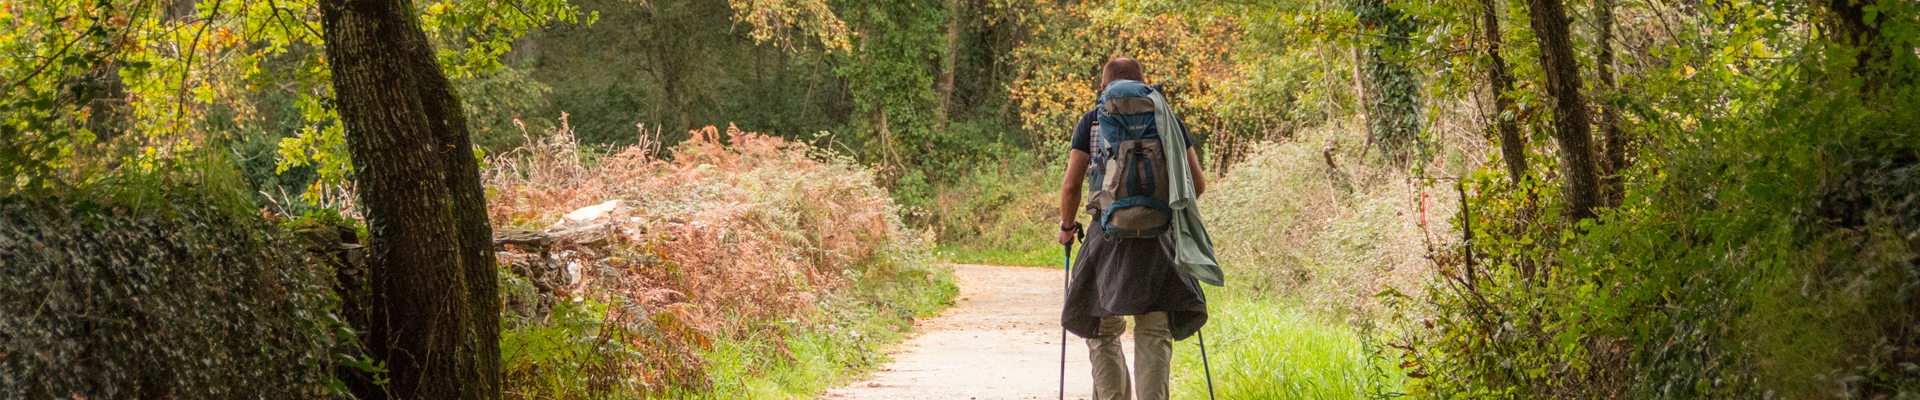 The last 100 kms of the Camino de Santiago RURAL